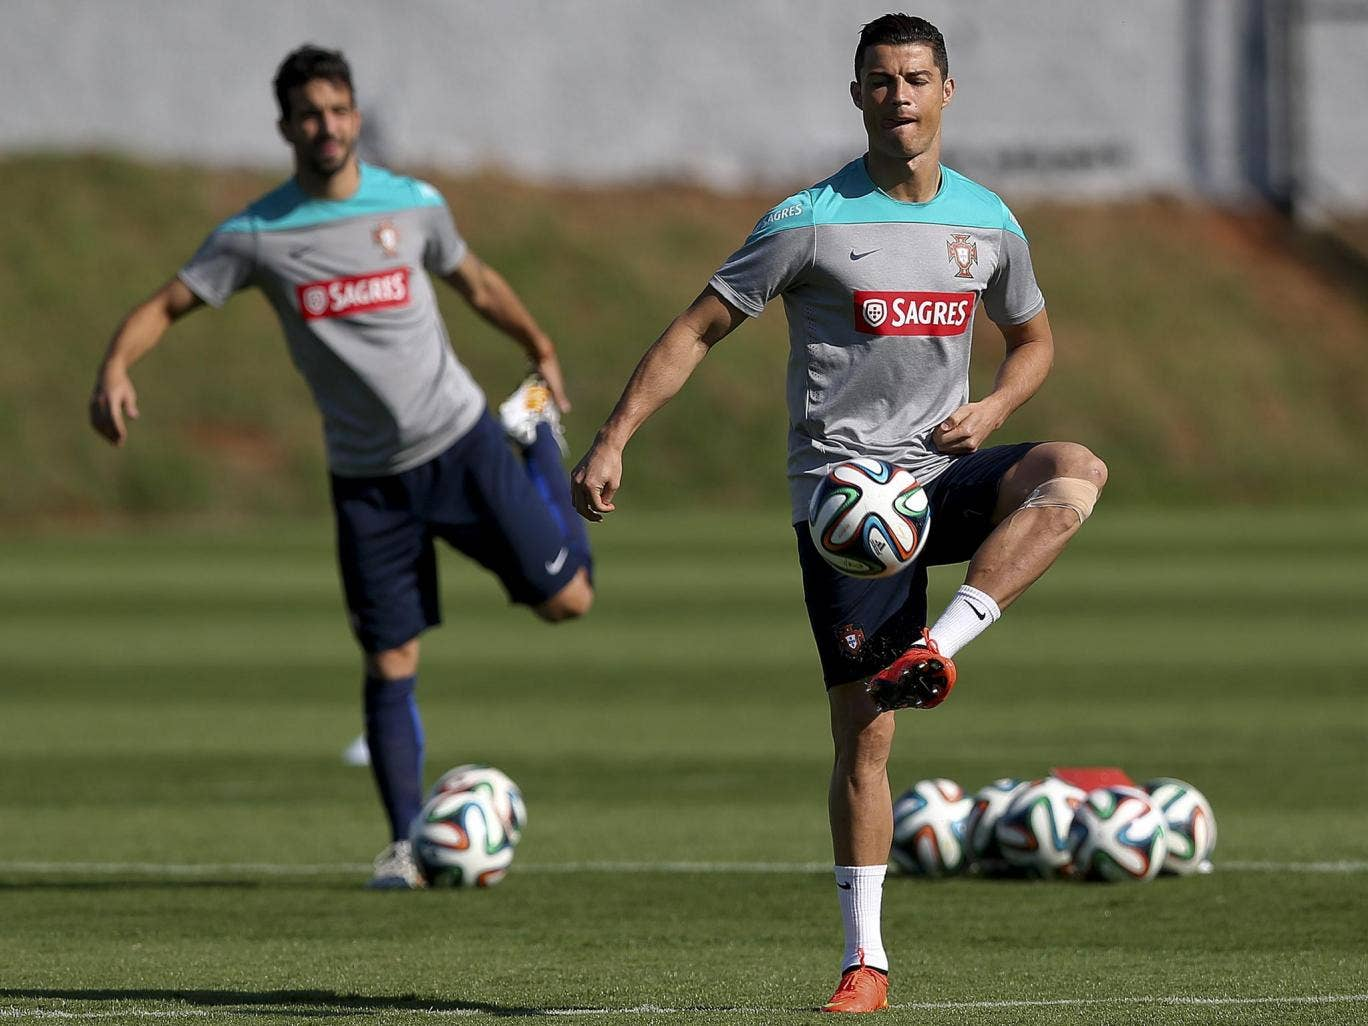 Cristiano Ronaldo during training yesterday, with his left knee strapped up